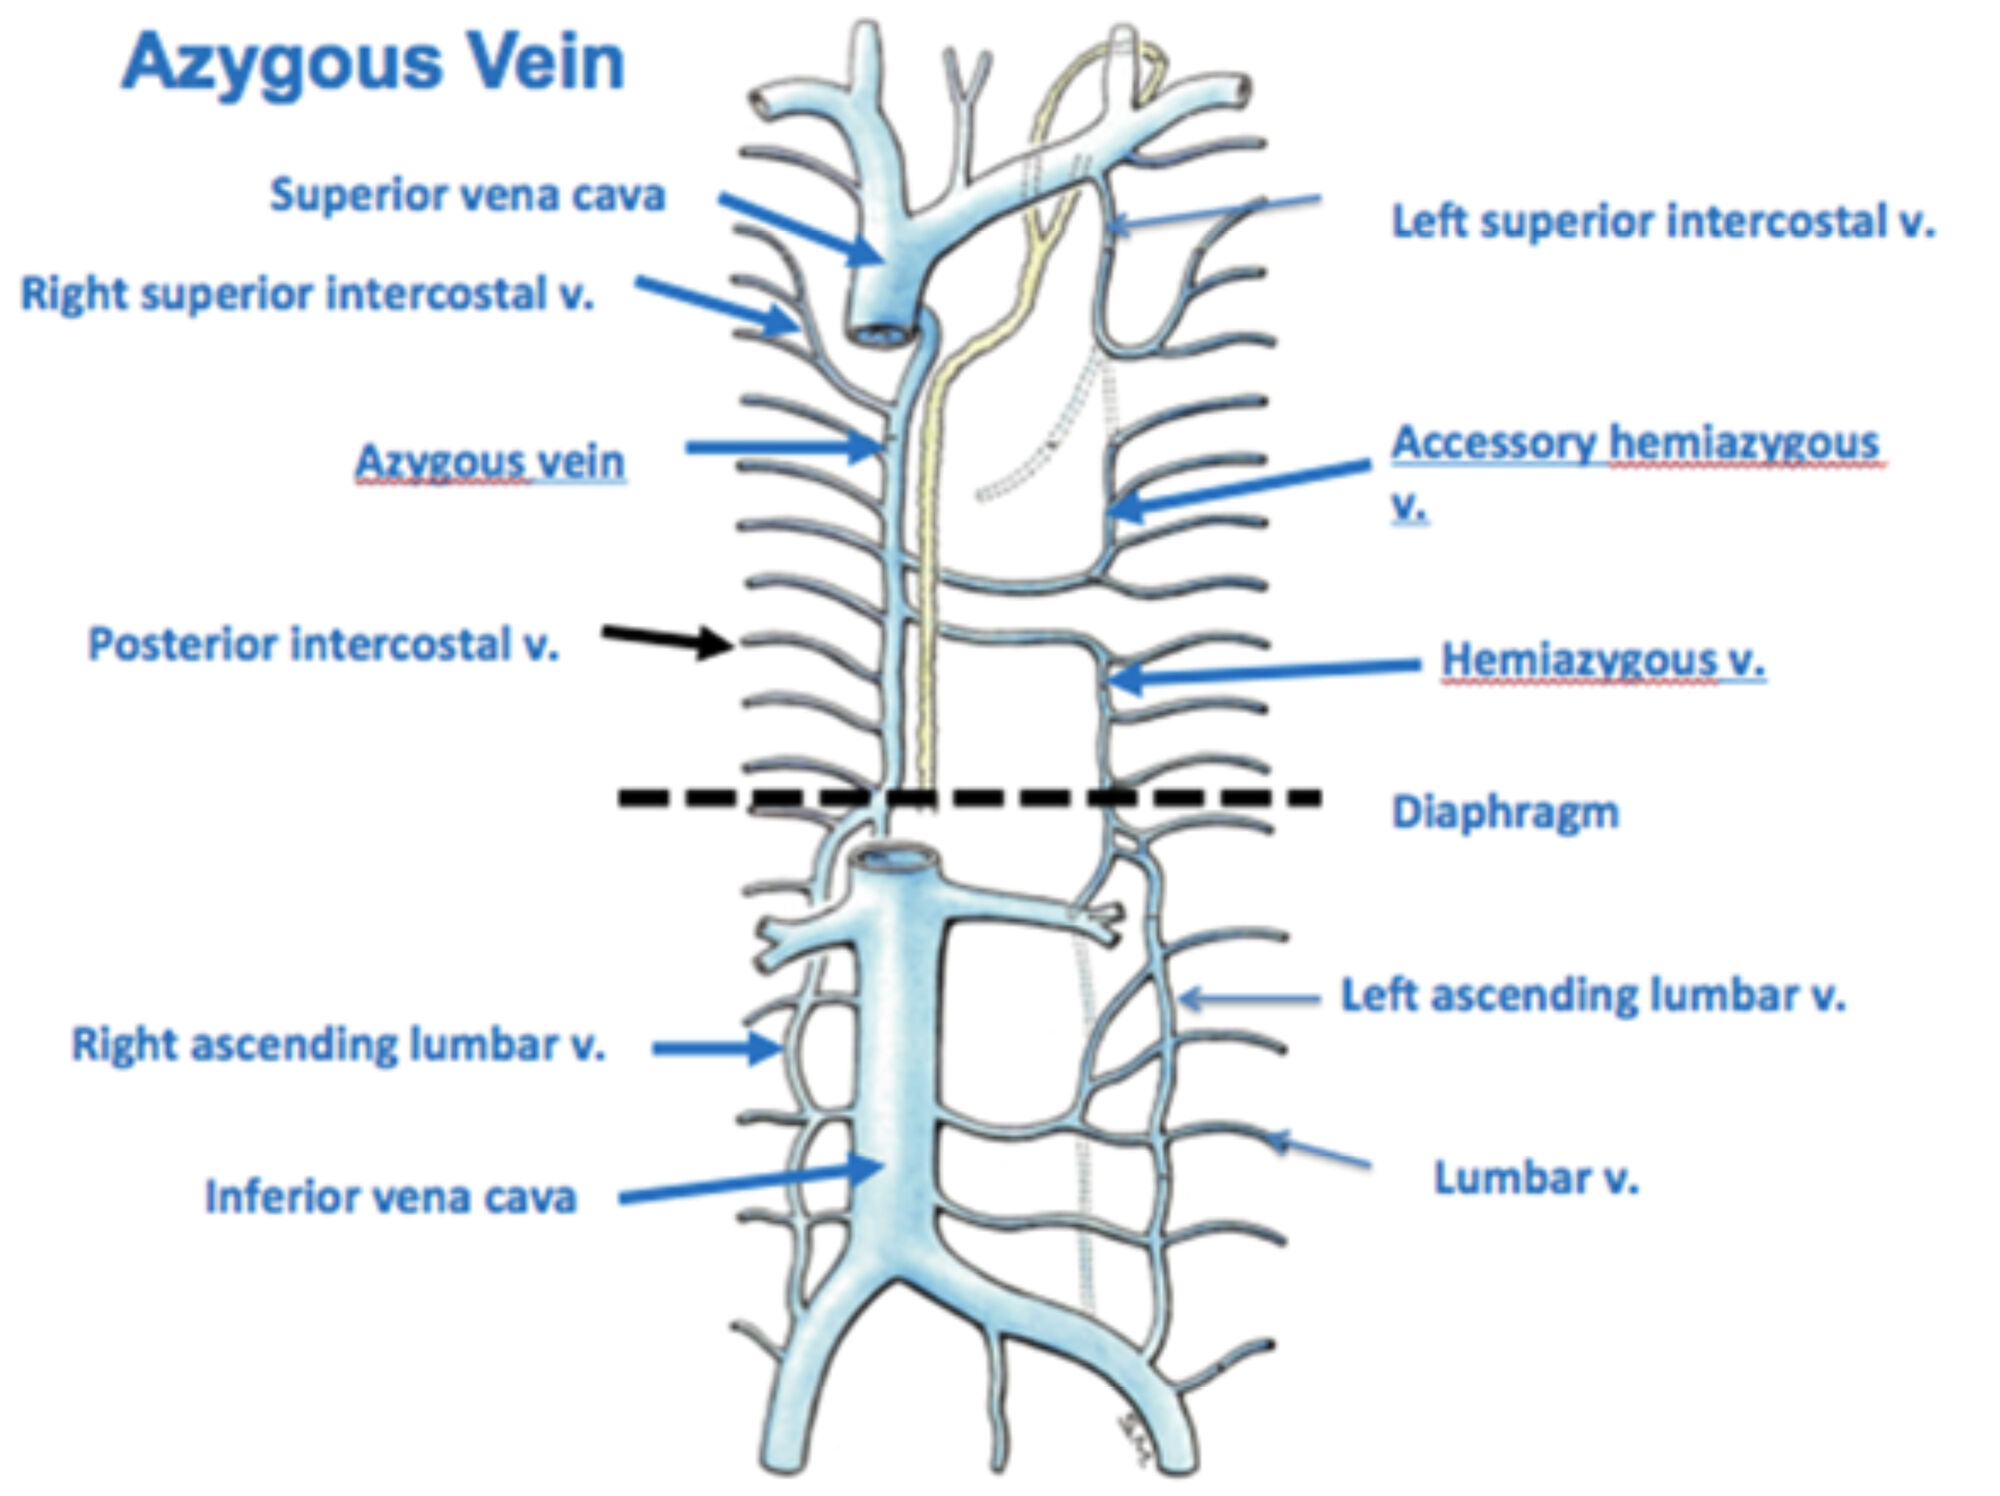 Central venous system anatomy 7448516 - follow4more.info